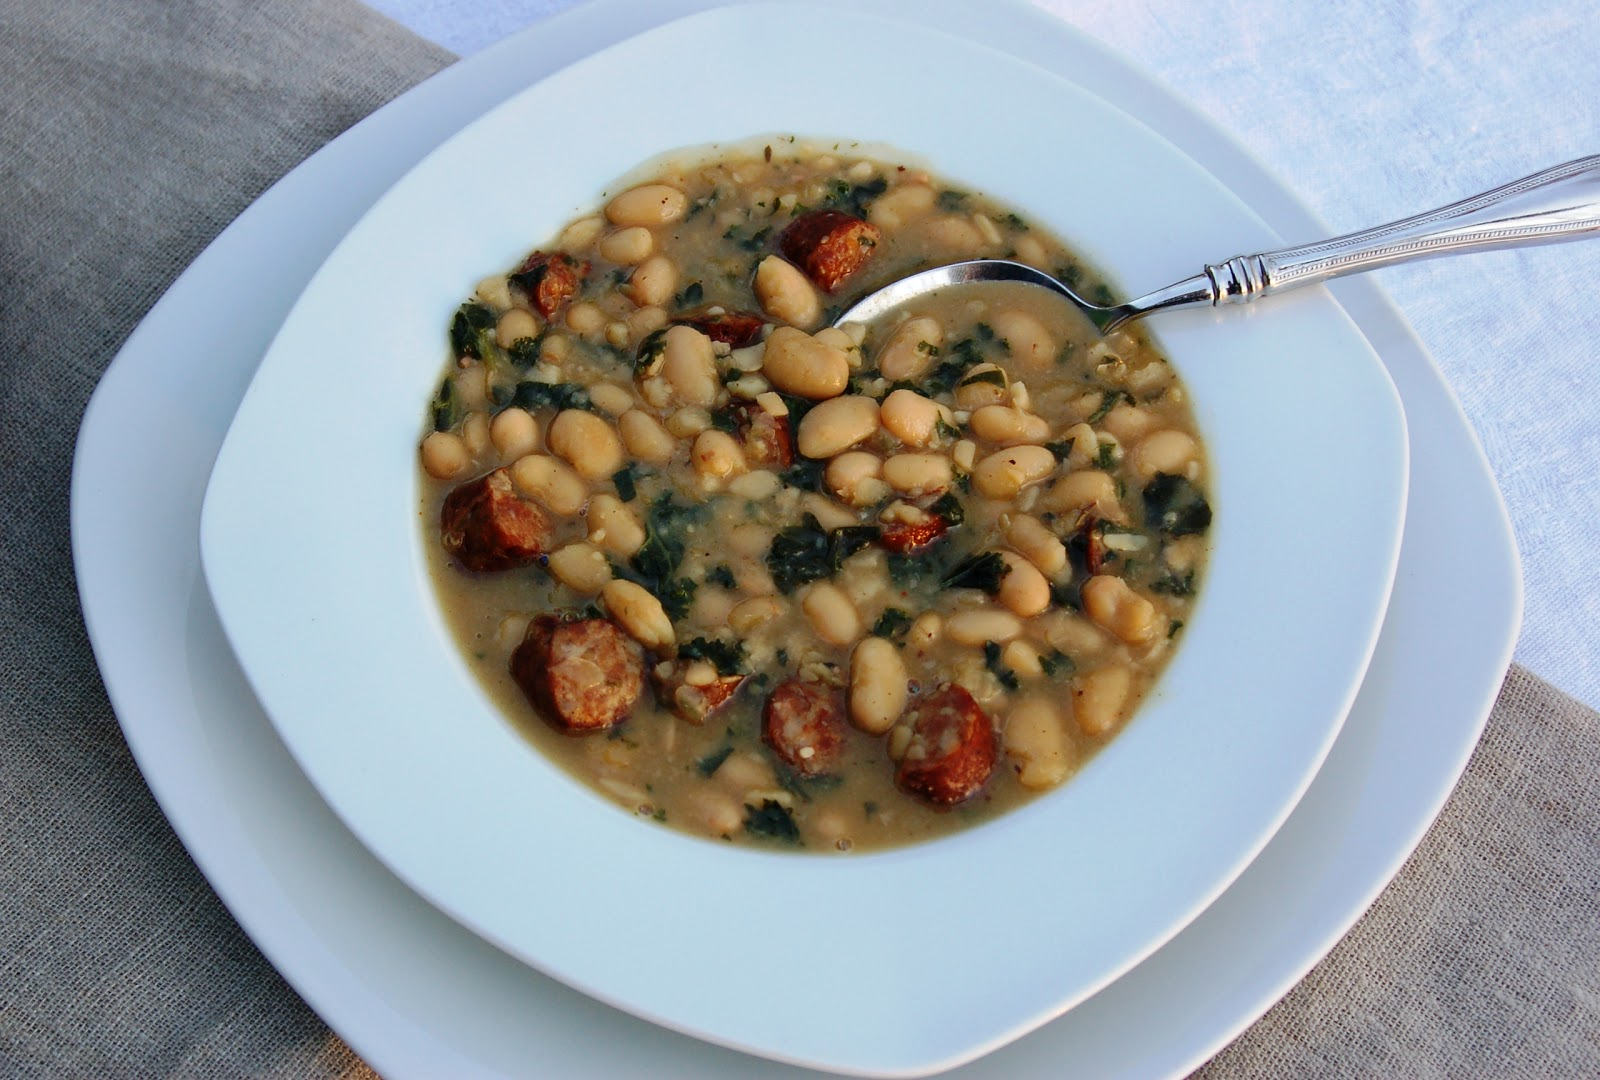 Another Marvelous Meal: Smoked Sausage, White Bean and Kale Soup